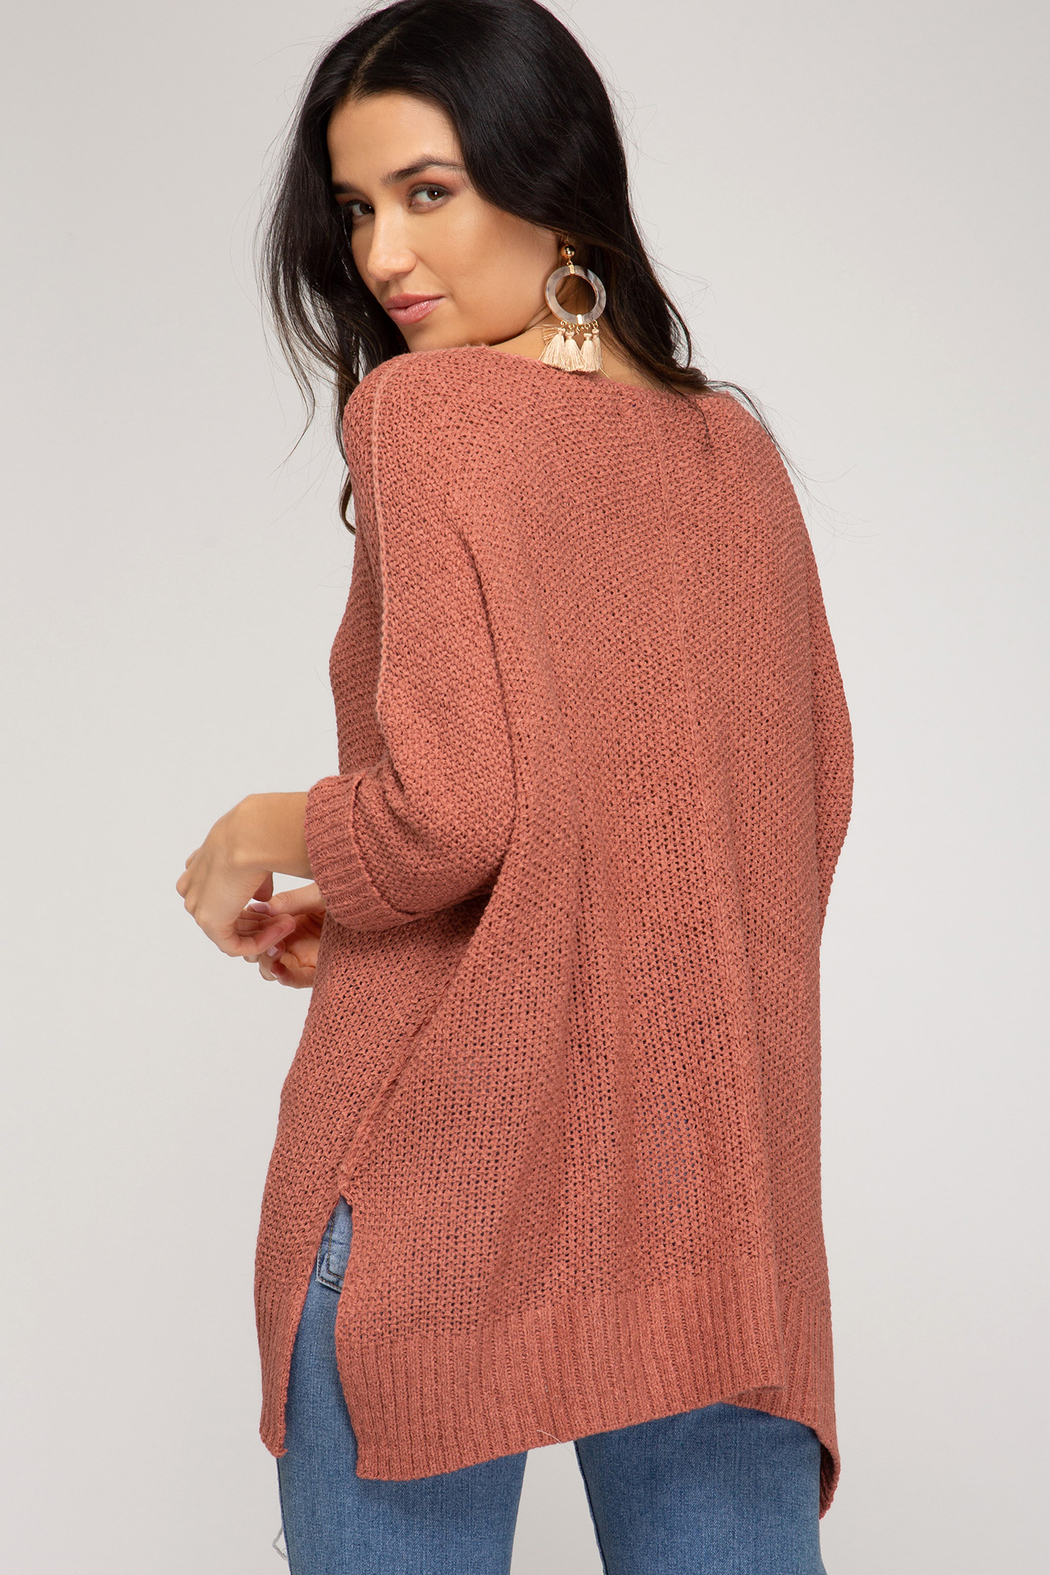 She and Sky 3/4 SLEEVE HILOW KNIT SWEATER TOP - Front Full Image